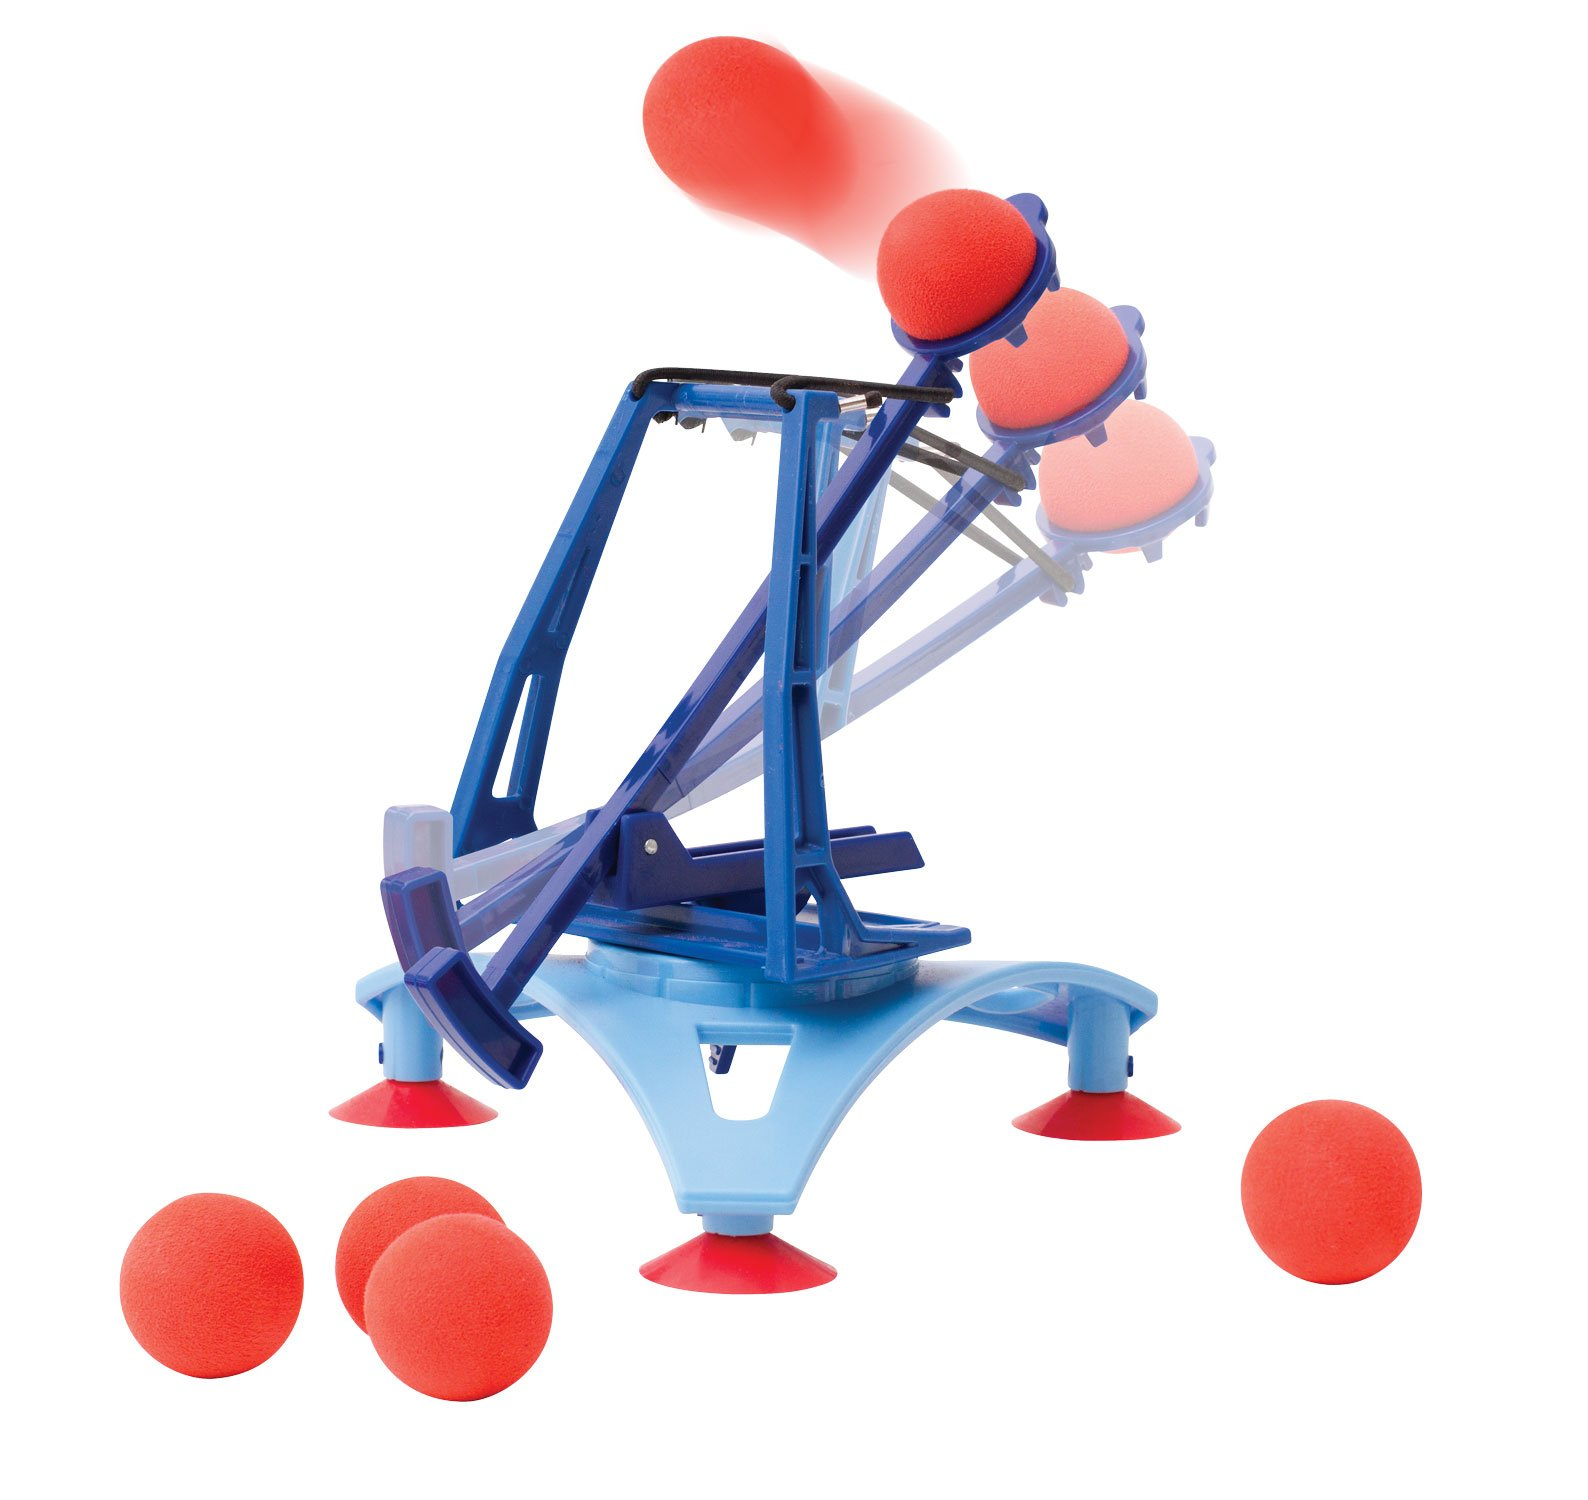 Buy Education Games Catapult Toy Now!